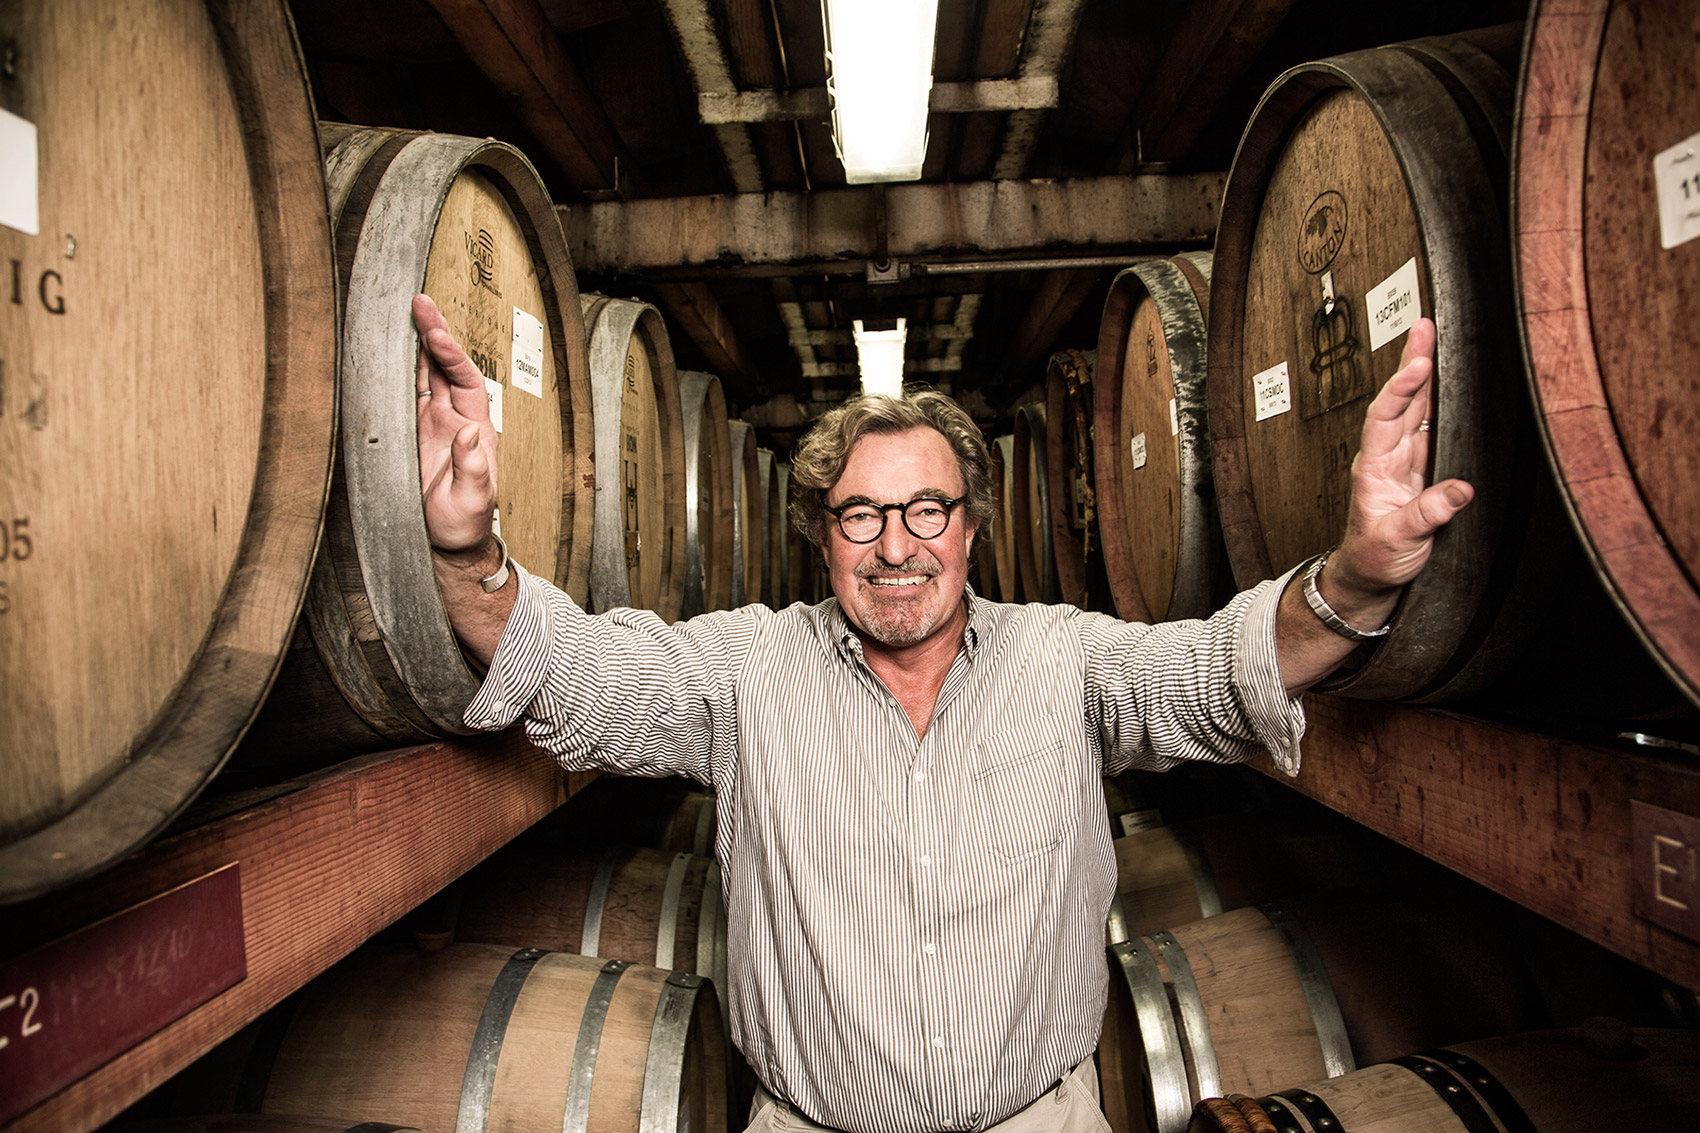 Kerry Damskey, Consultant Winemaker